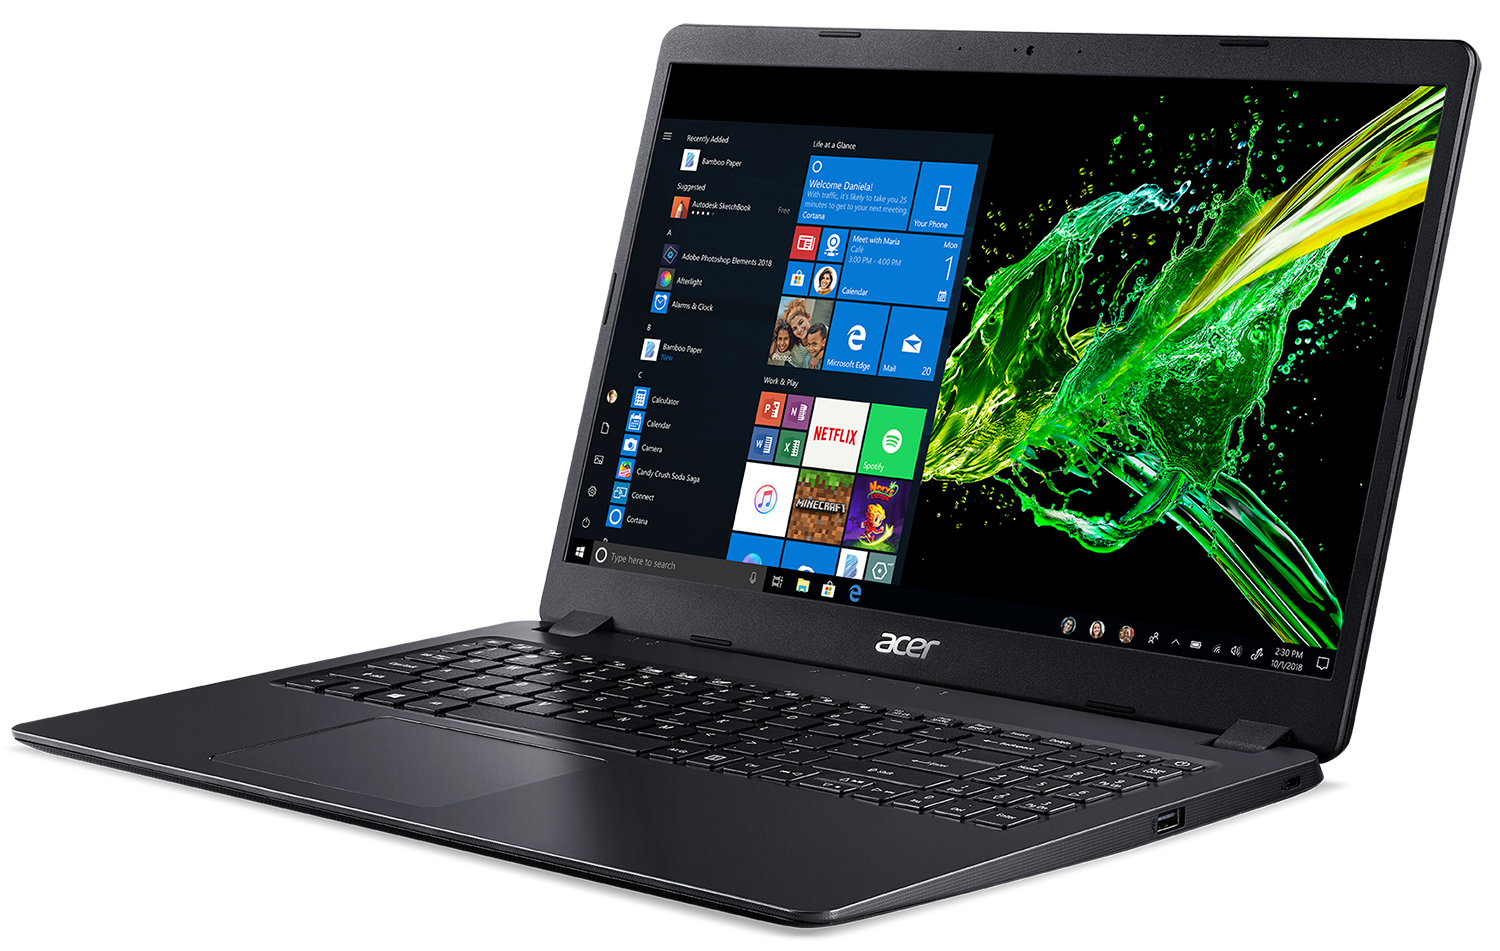 Acer Aspire 3 (A315-42) review – the bare minimum